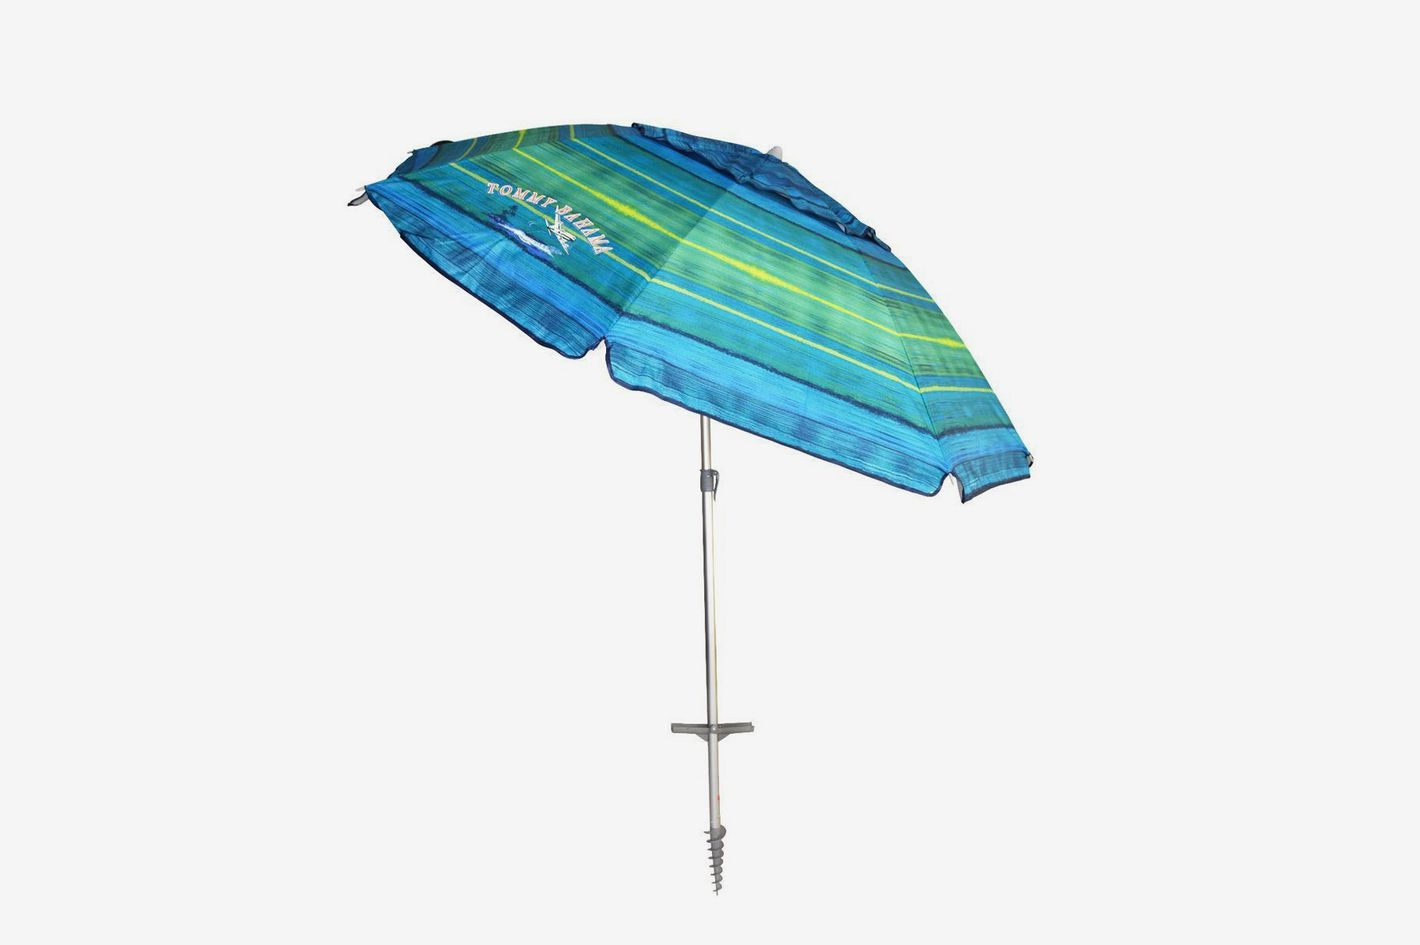 Beach Umbrella To Tommy Bahama Sand Anchor 7u0027 Beach Umbrella With Tilt And Telescoping Pole At Amazon The Best Umbrellas 2018